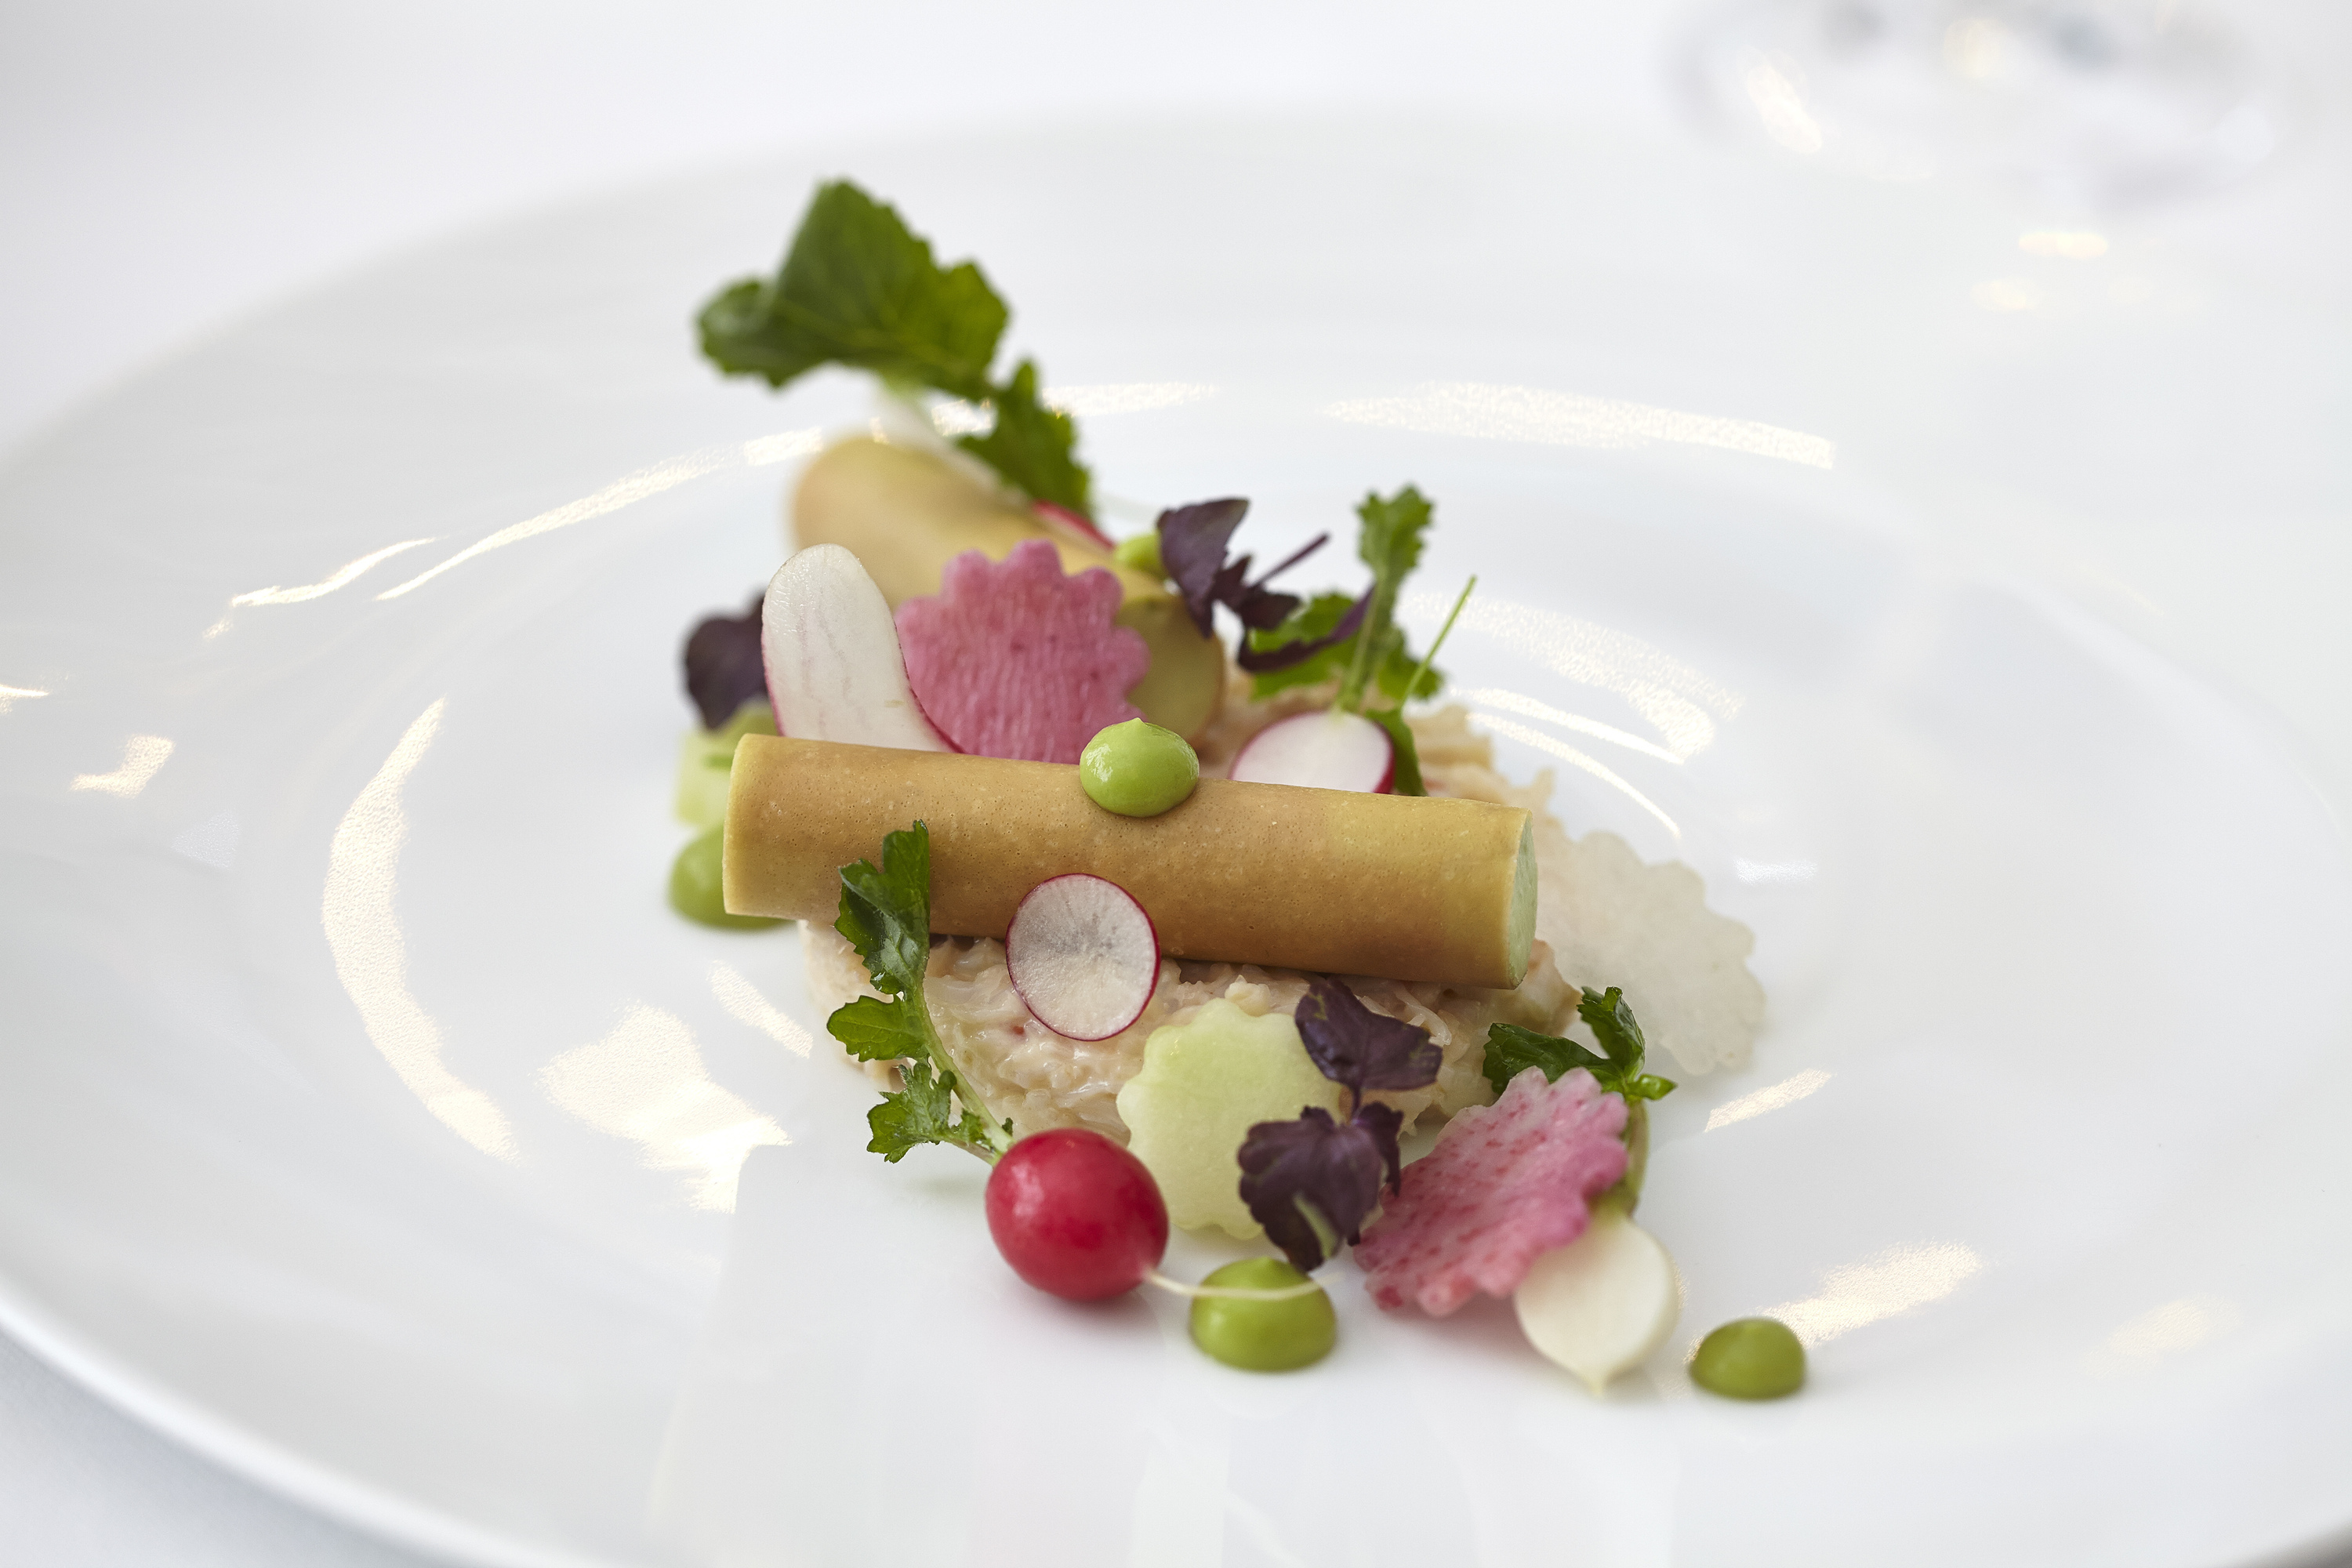 Michelin Star Restaurants In London - Top 10 expensive michelin starred restaurants world